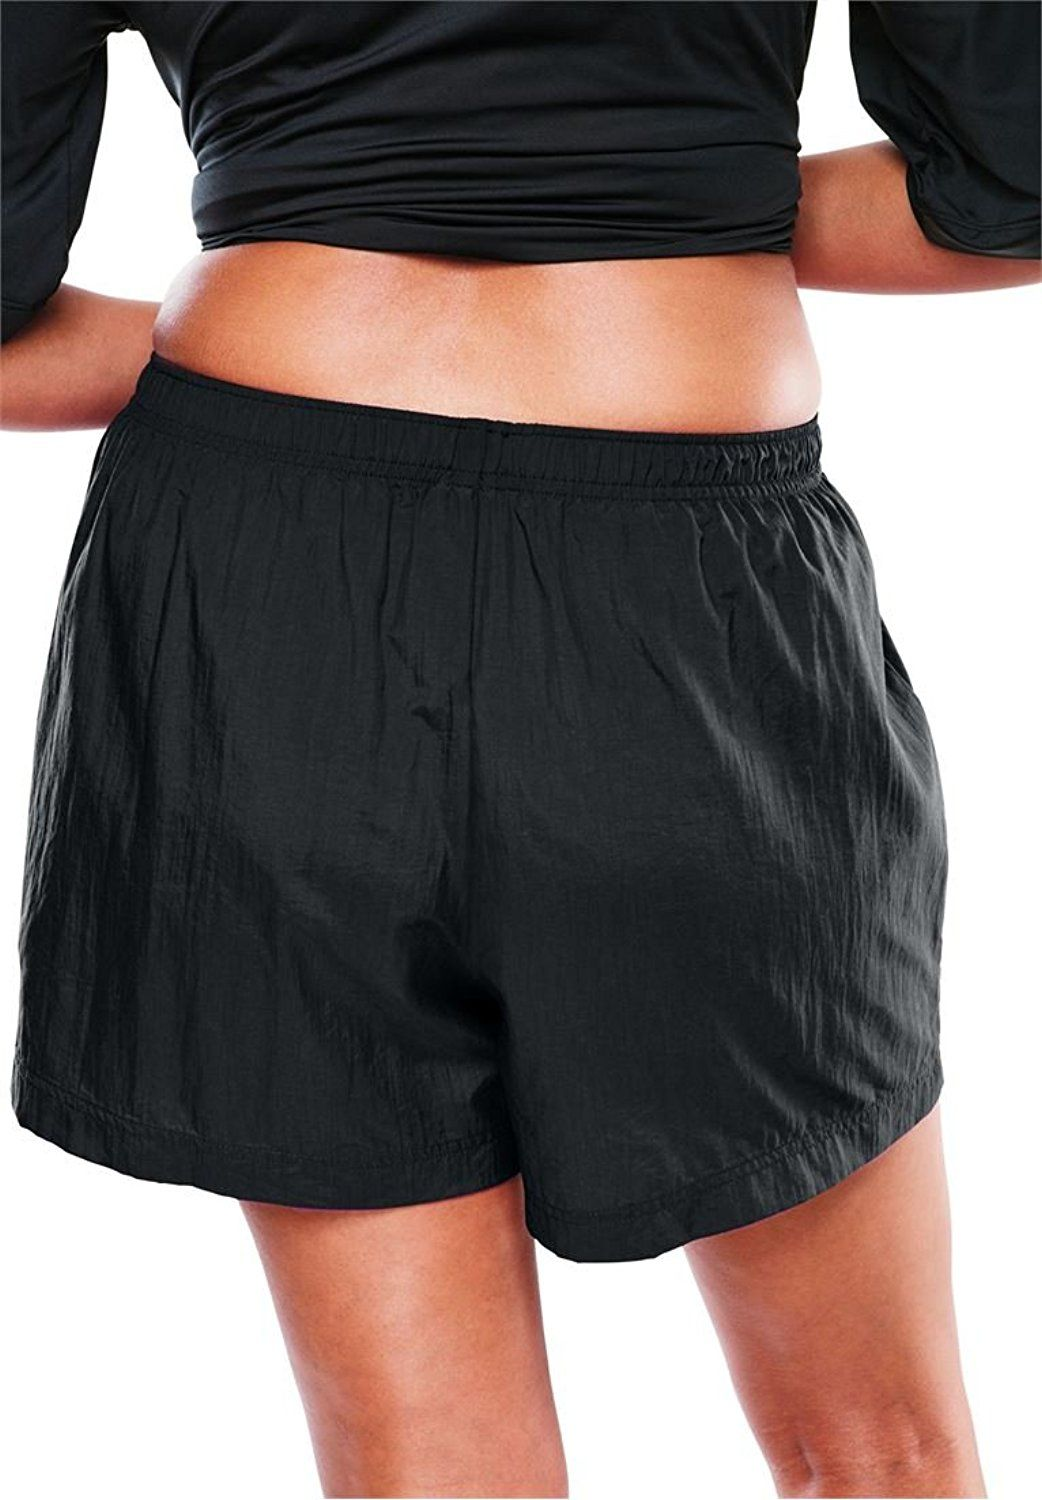 ed10963030ef0 Woman Within Women's Plus Size Taslon Shorts Black,22/24 -- See this great  product. (This is an affiliate link) #Plussizeswimwear